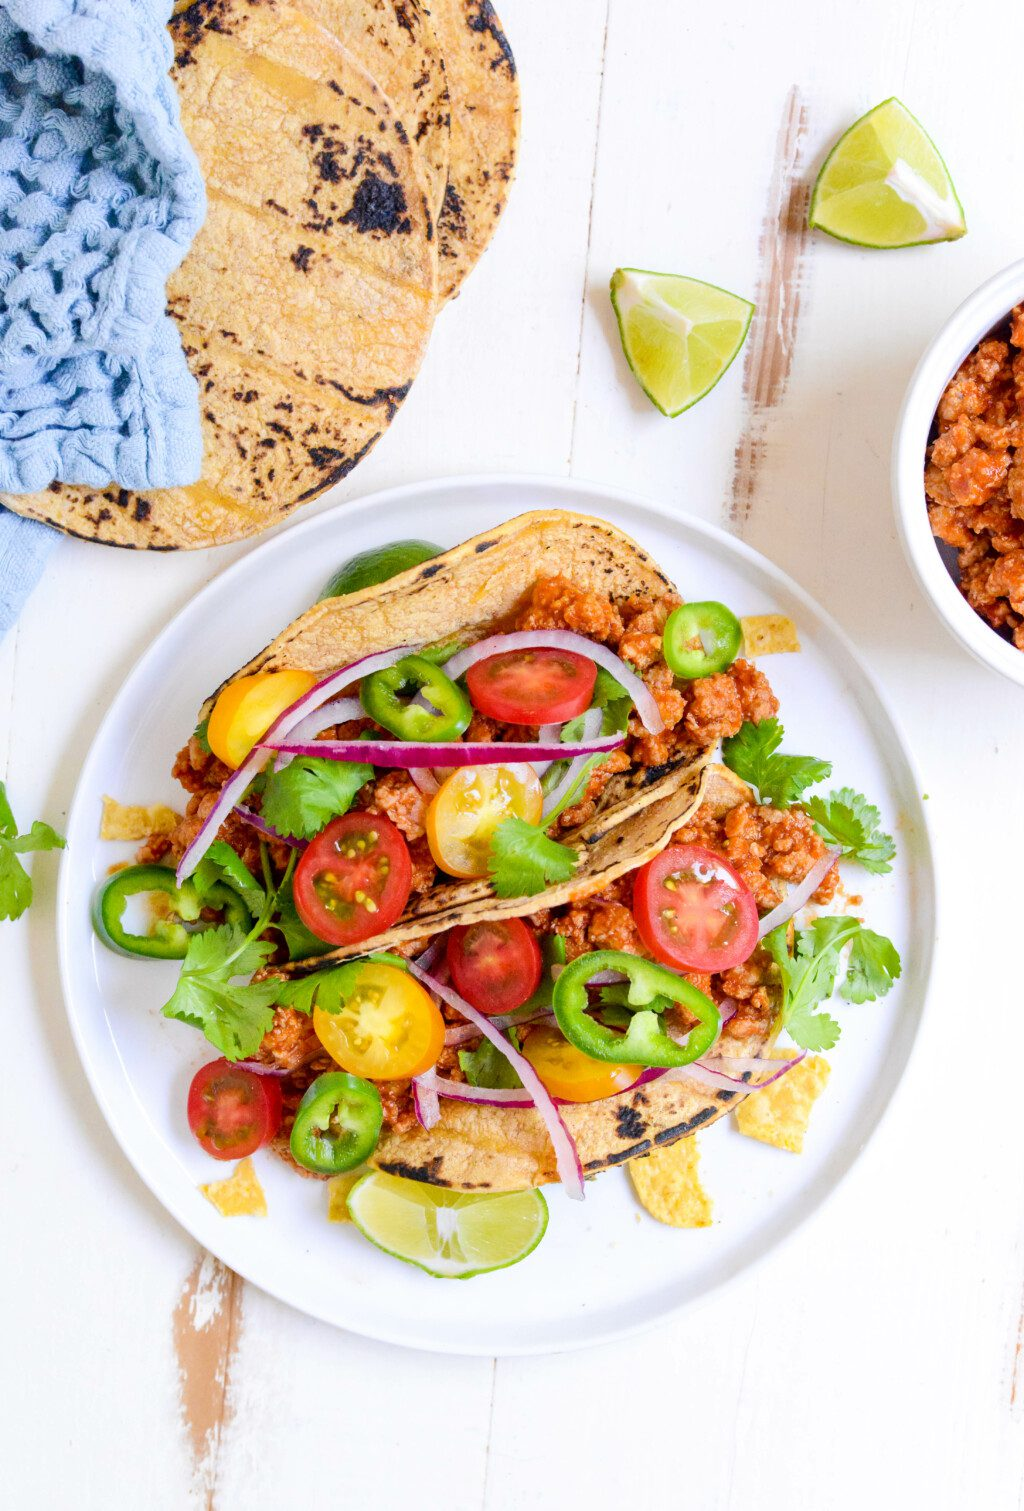 two slow cooker turkey tacos on a white plate with lime wedges and tortillas